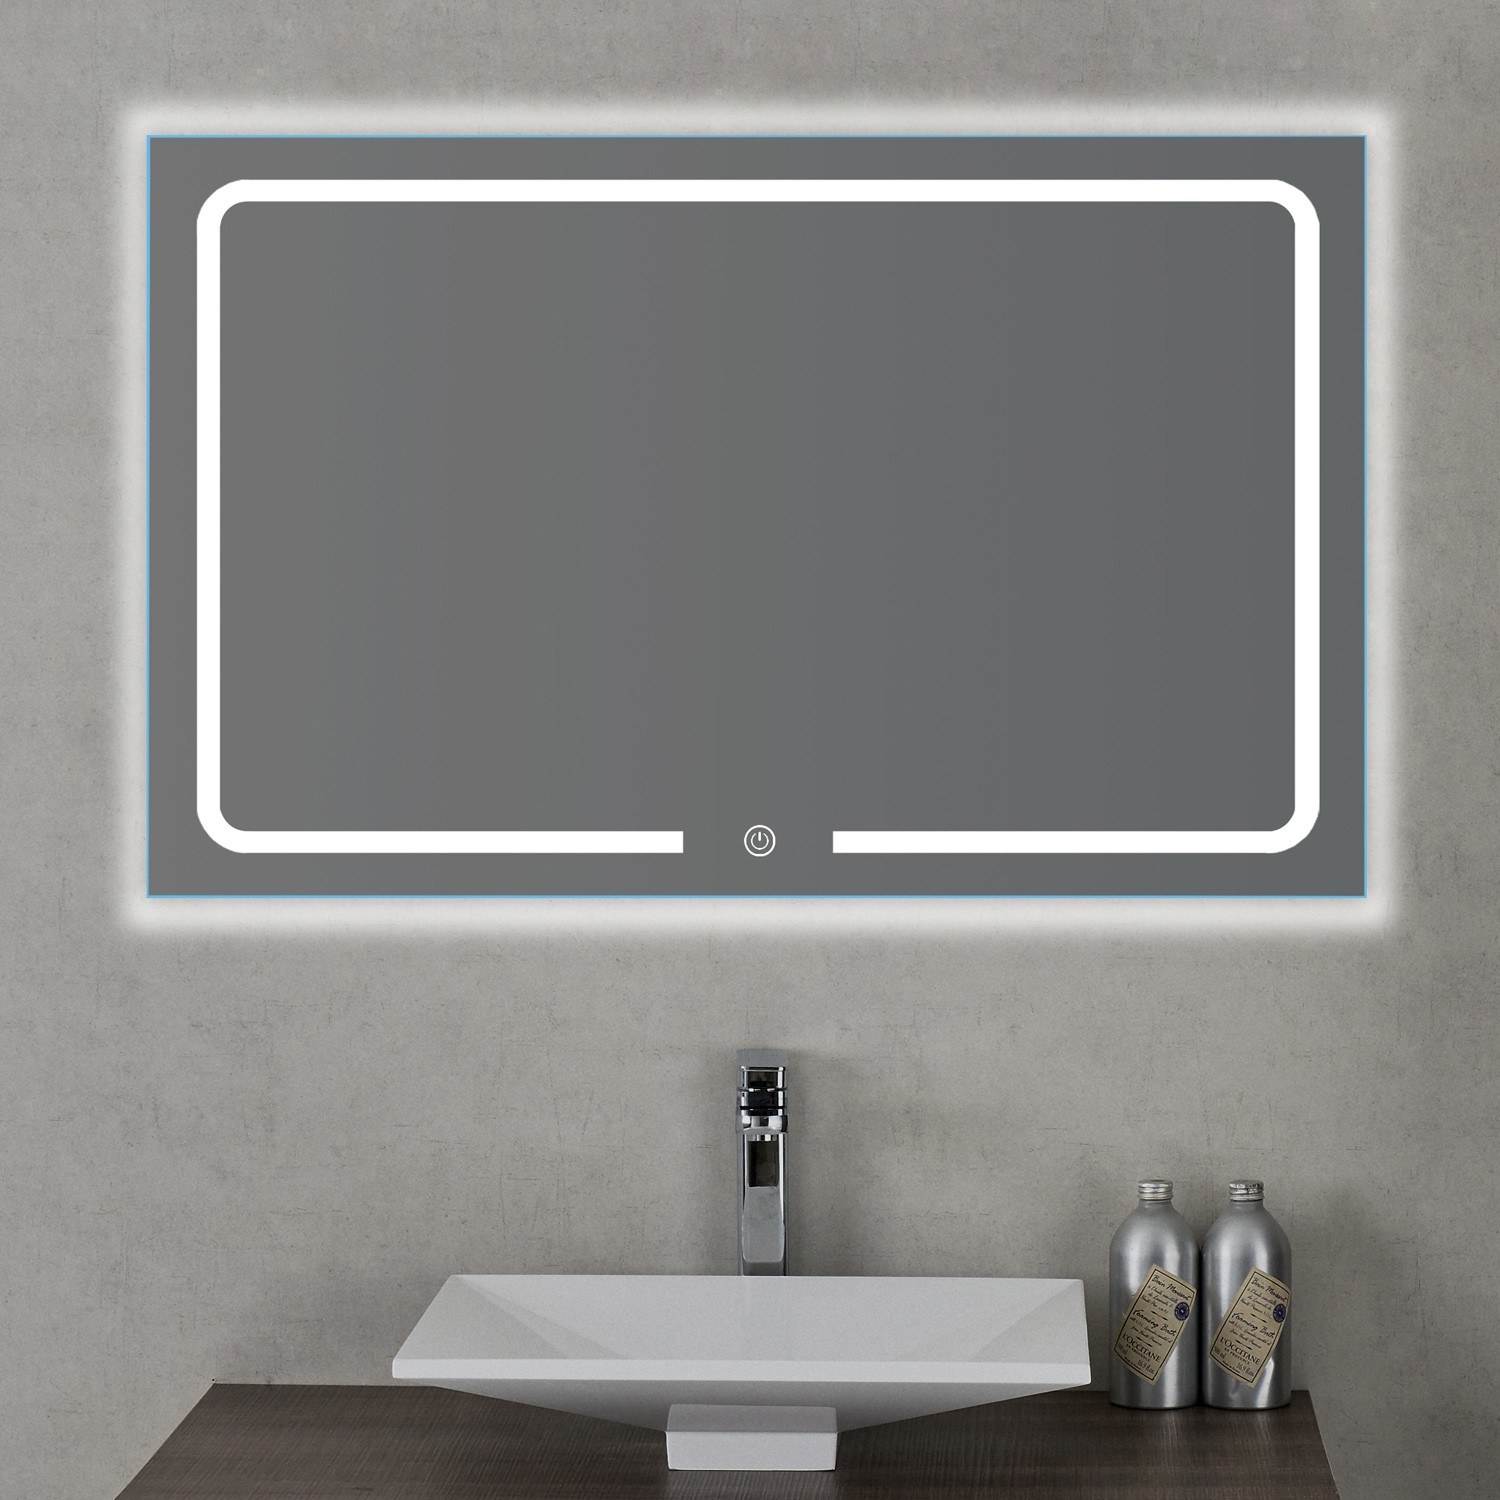 spiegel led cheap bruynzeel spiegel verticale miroir avec. Black Bedroom Furniture Sets. Home Design Ideas